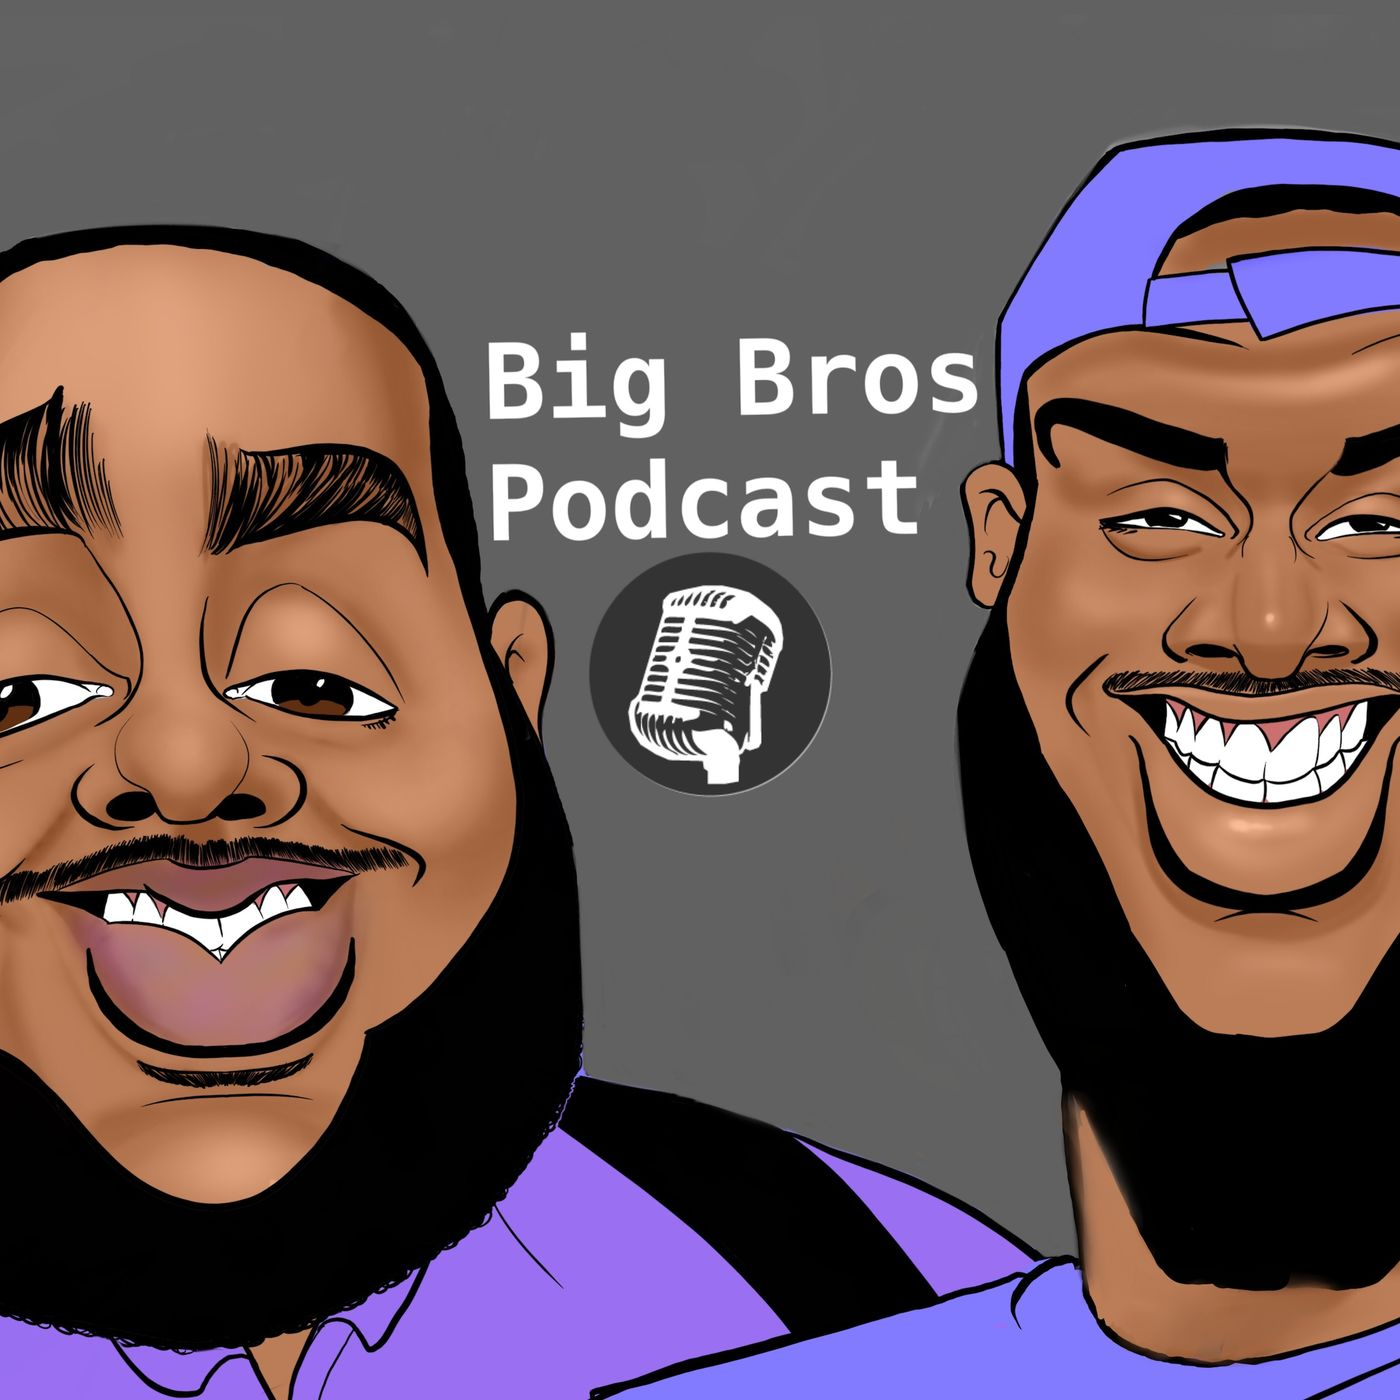 Big Bros Podcast